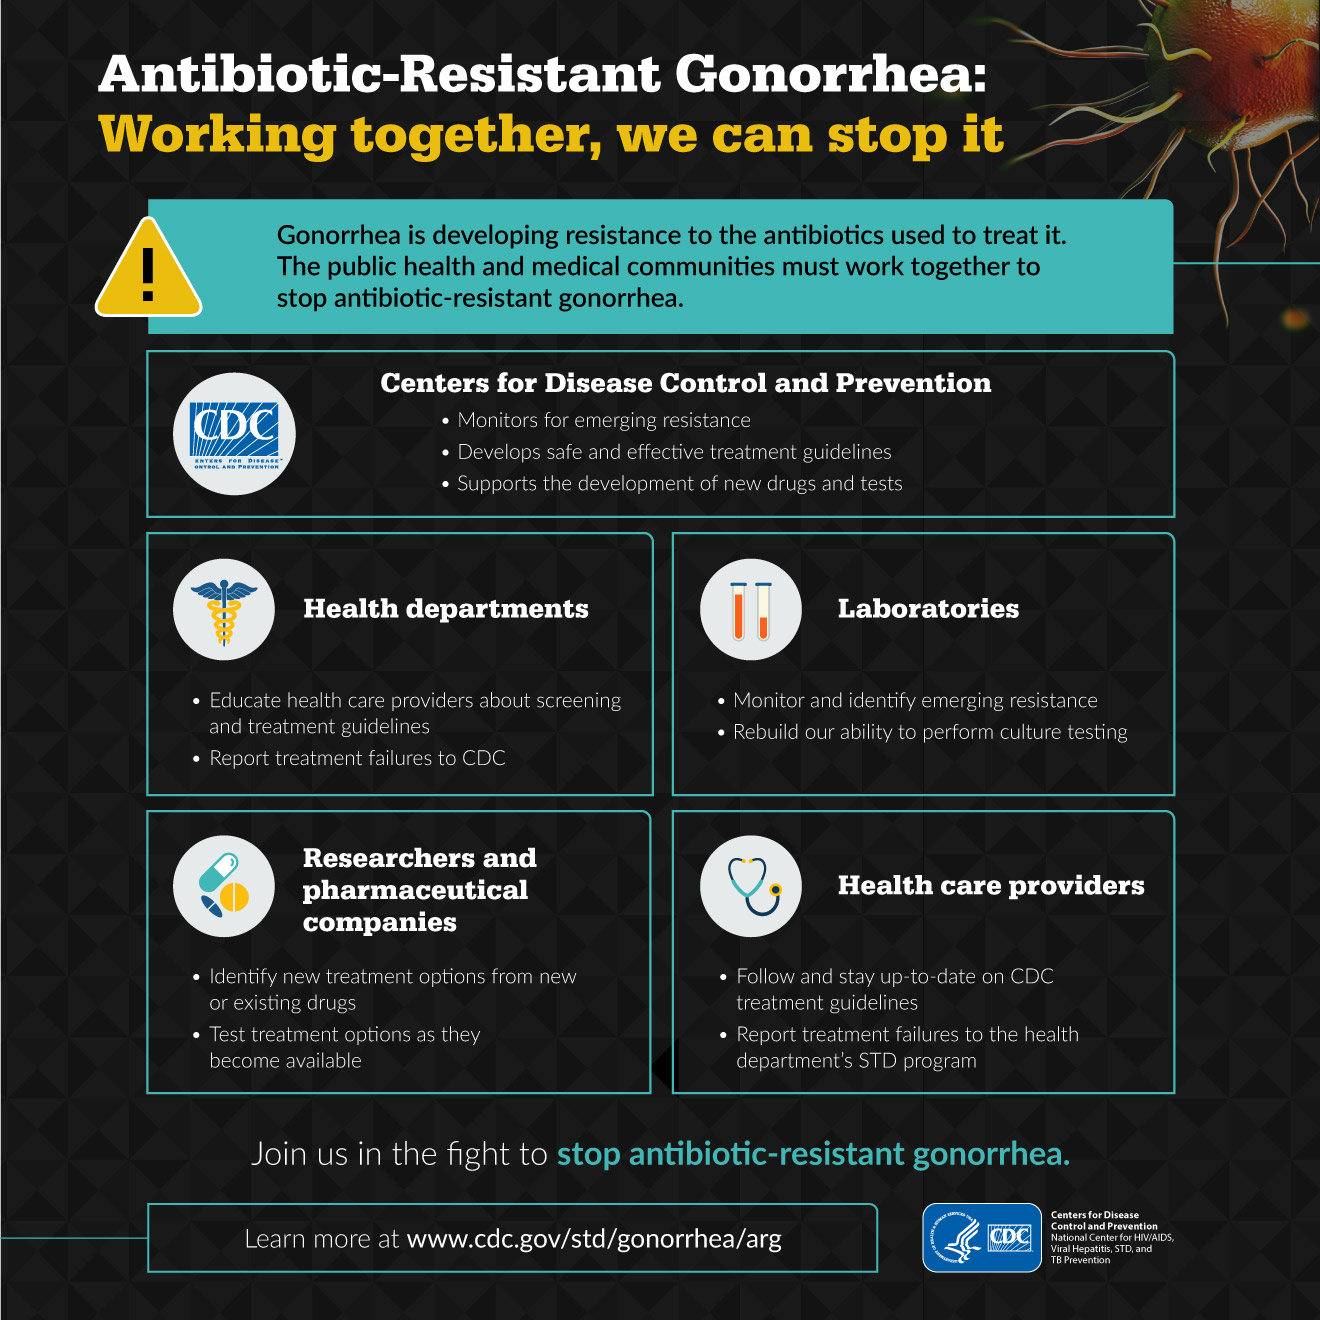 Gonorrhea is developing a resistance to the antibiotics we use to treat it. The public health and medical communities must work together to stop antibiotic-resistant gonorrhea. Learn more at: www.cdc.gov/std/gonorrhea/arg